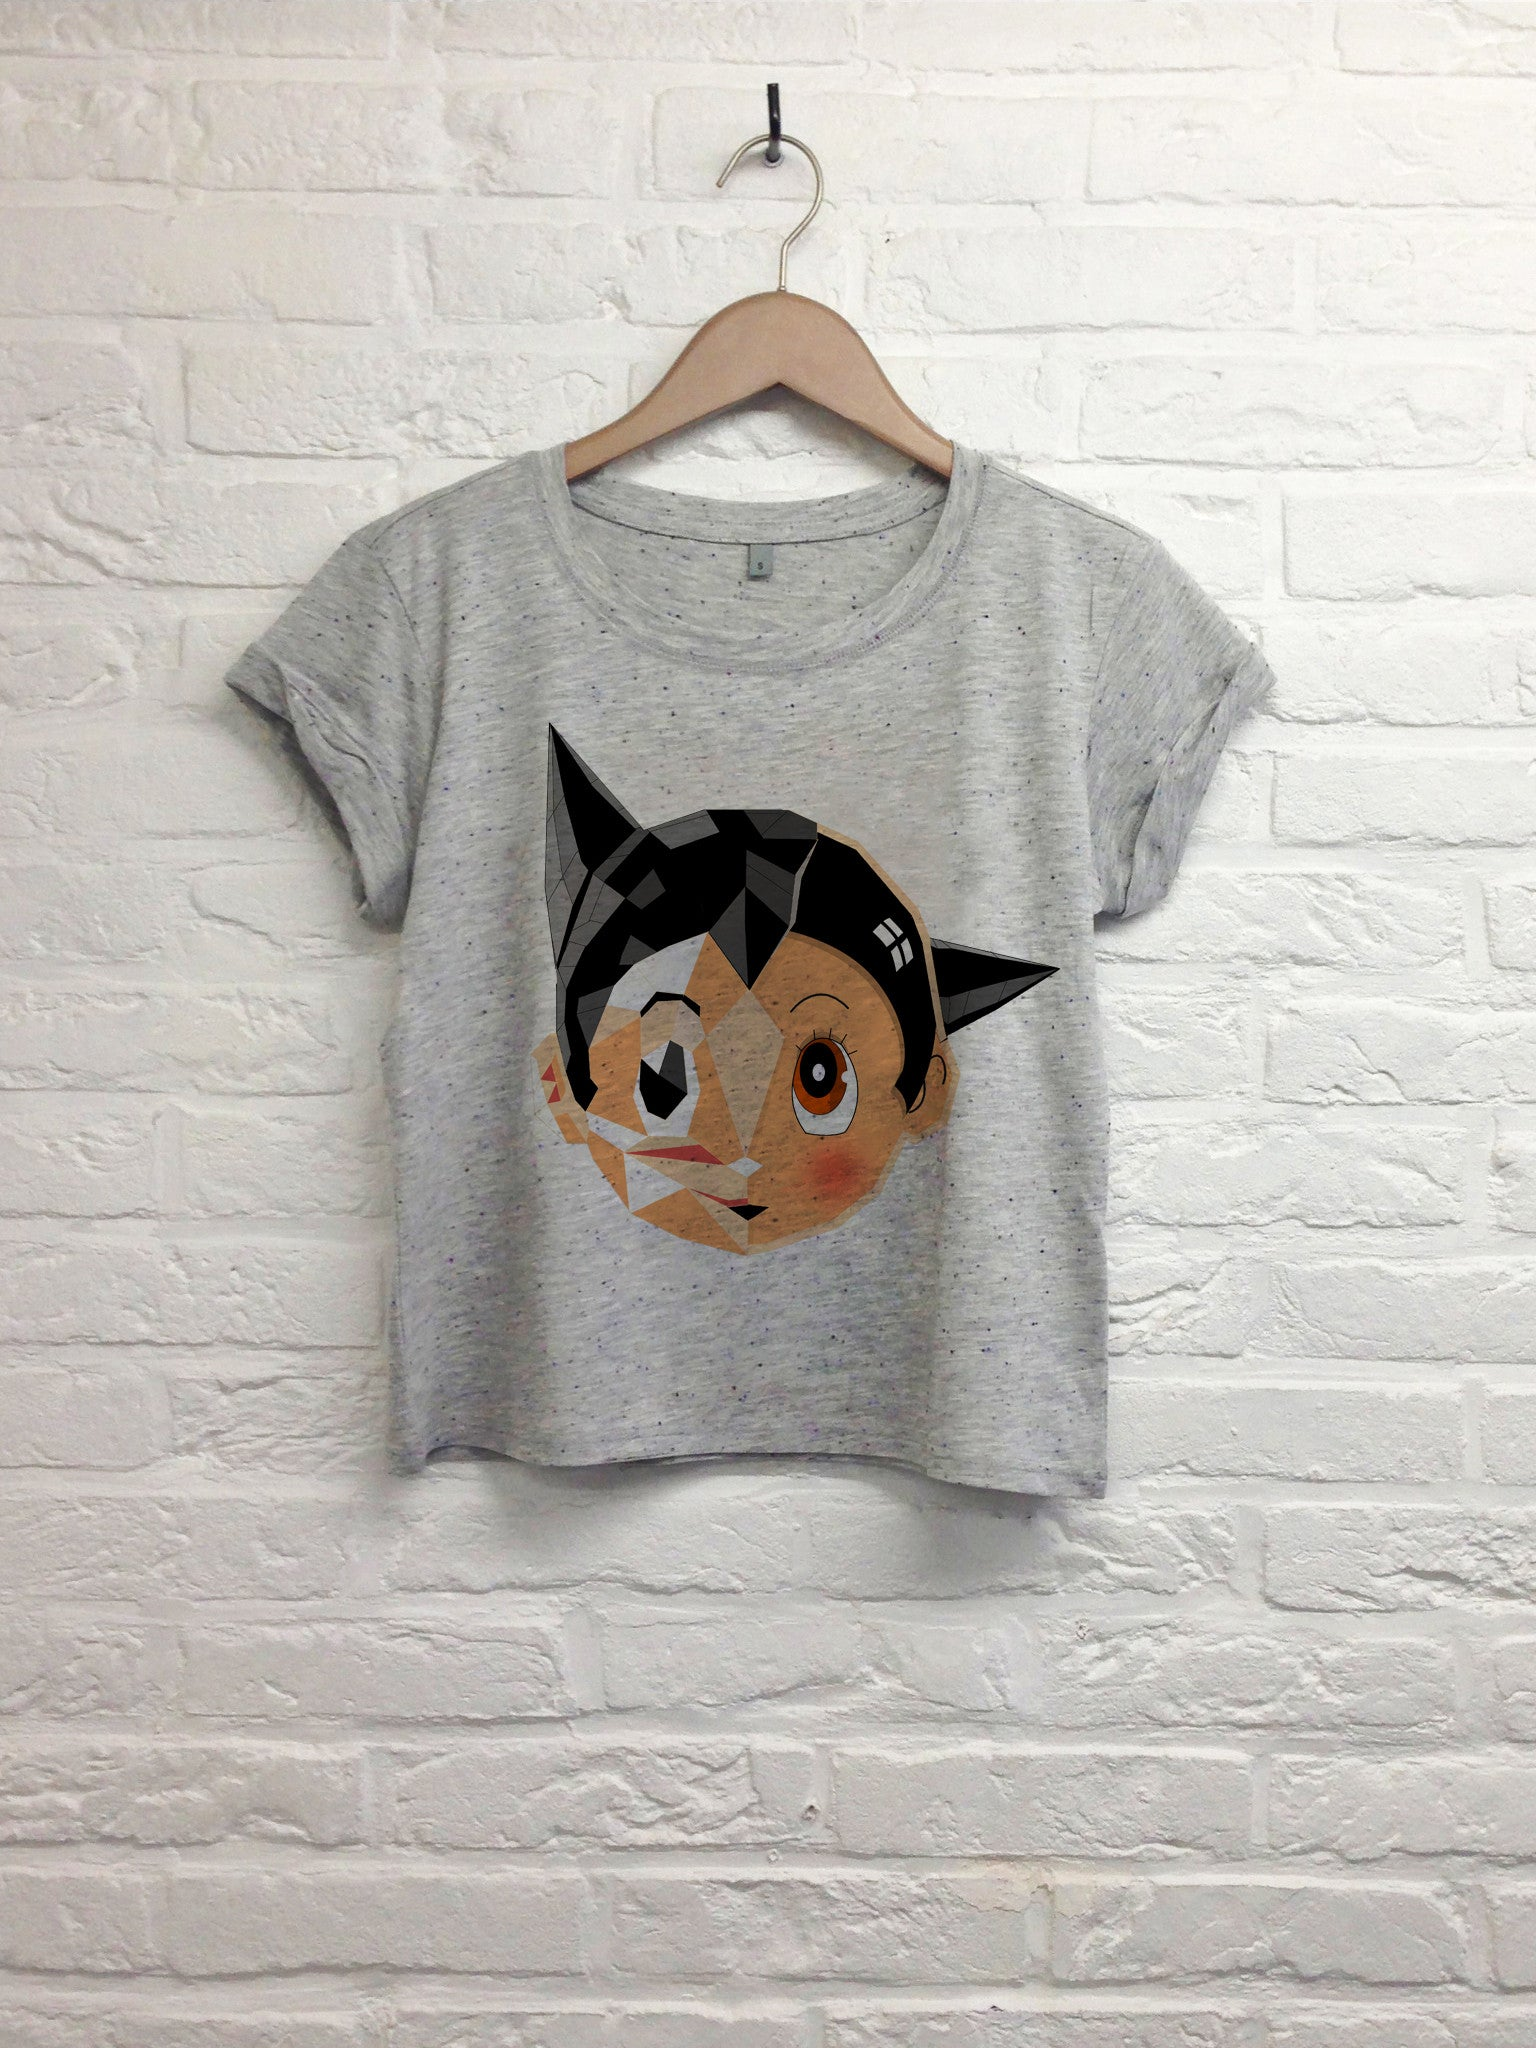 TH Gallery - Astro boy - Crop top speckled Grey-T shirt-Atelier Amelot